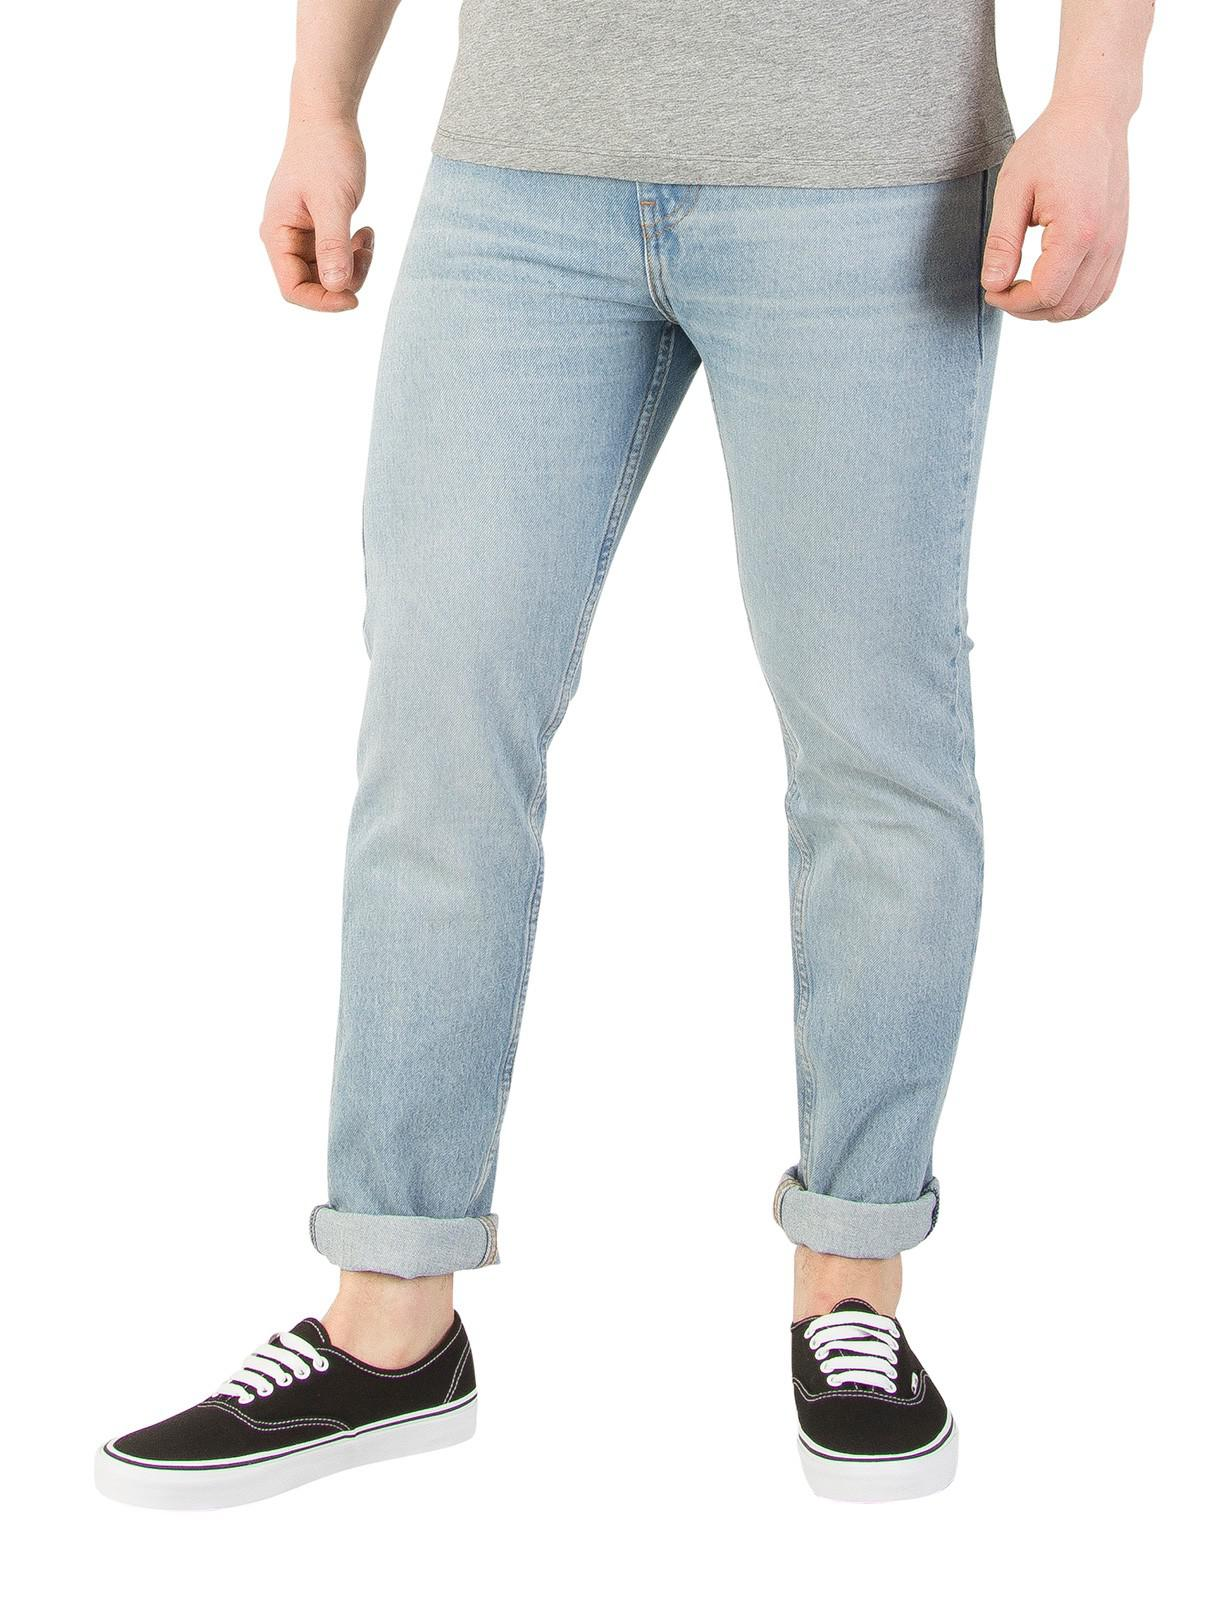 8a8f9421835 Levi's Gingham Warp 510 Skinny Fit Jeans in Blue for Men - Lyst